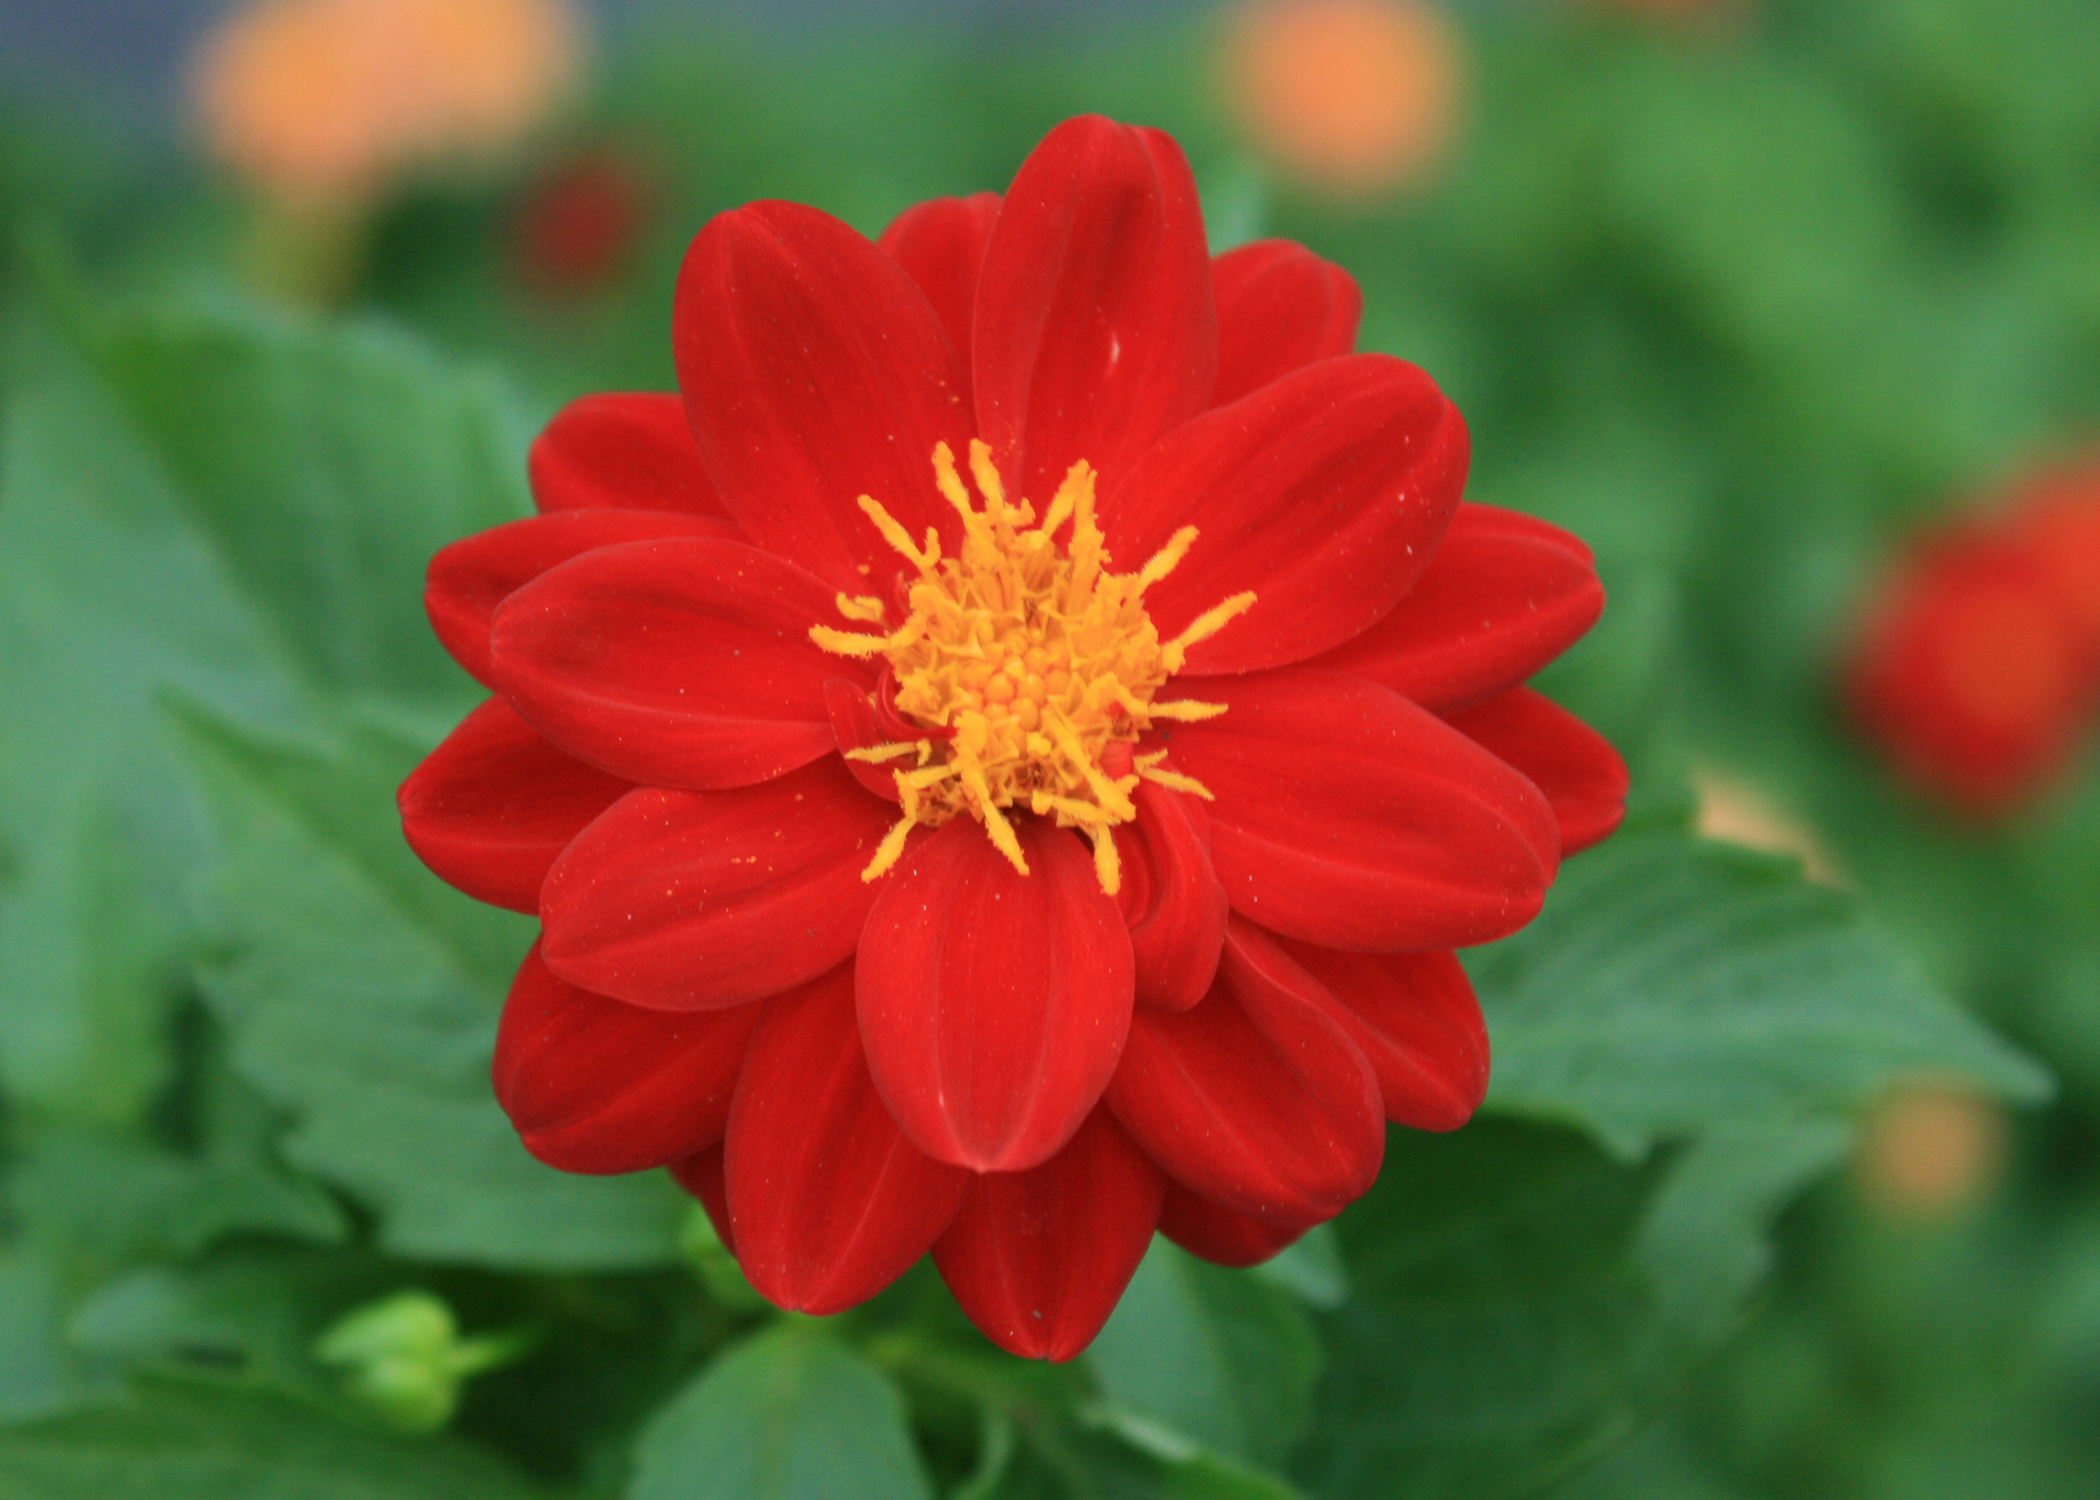 Try underused dahlias in summer landscapes mississippi state university extension service for Olive garden blue springs missouri